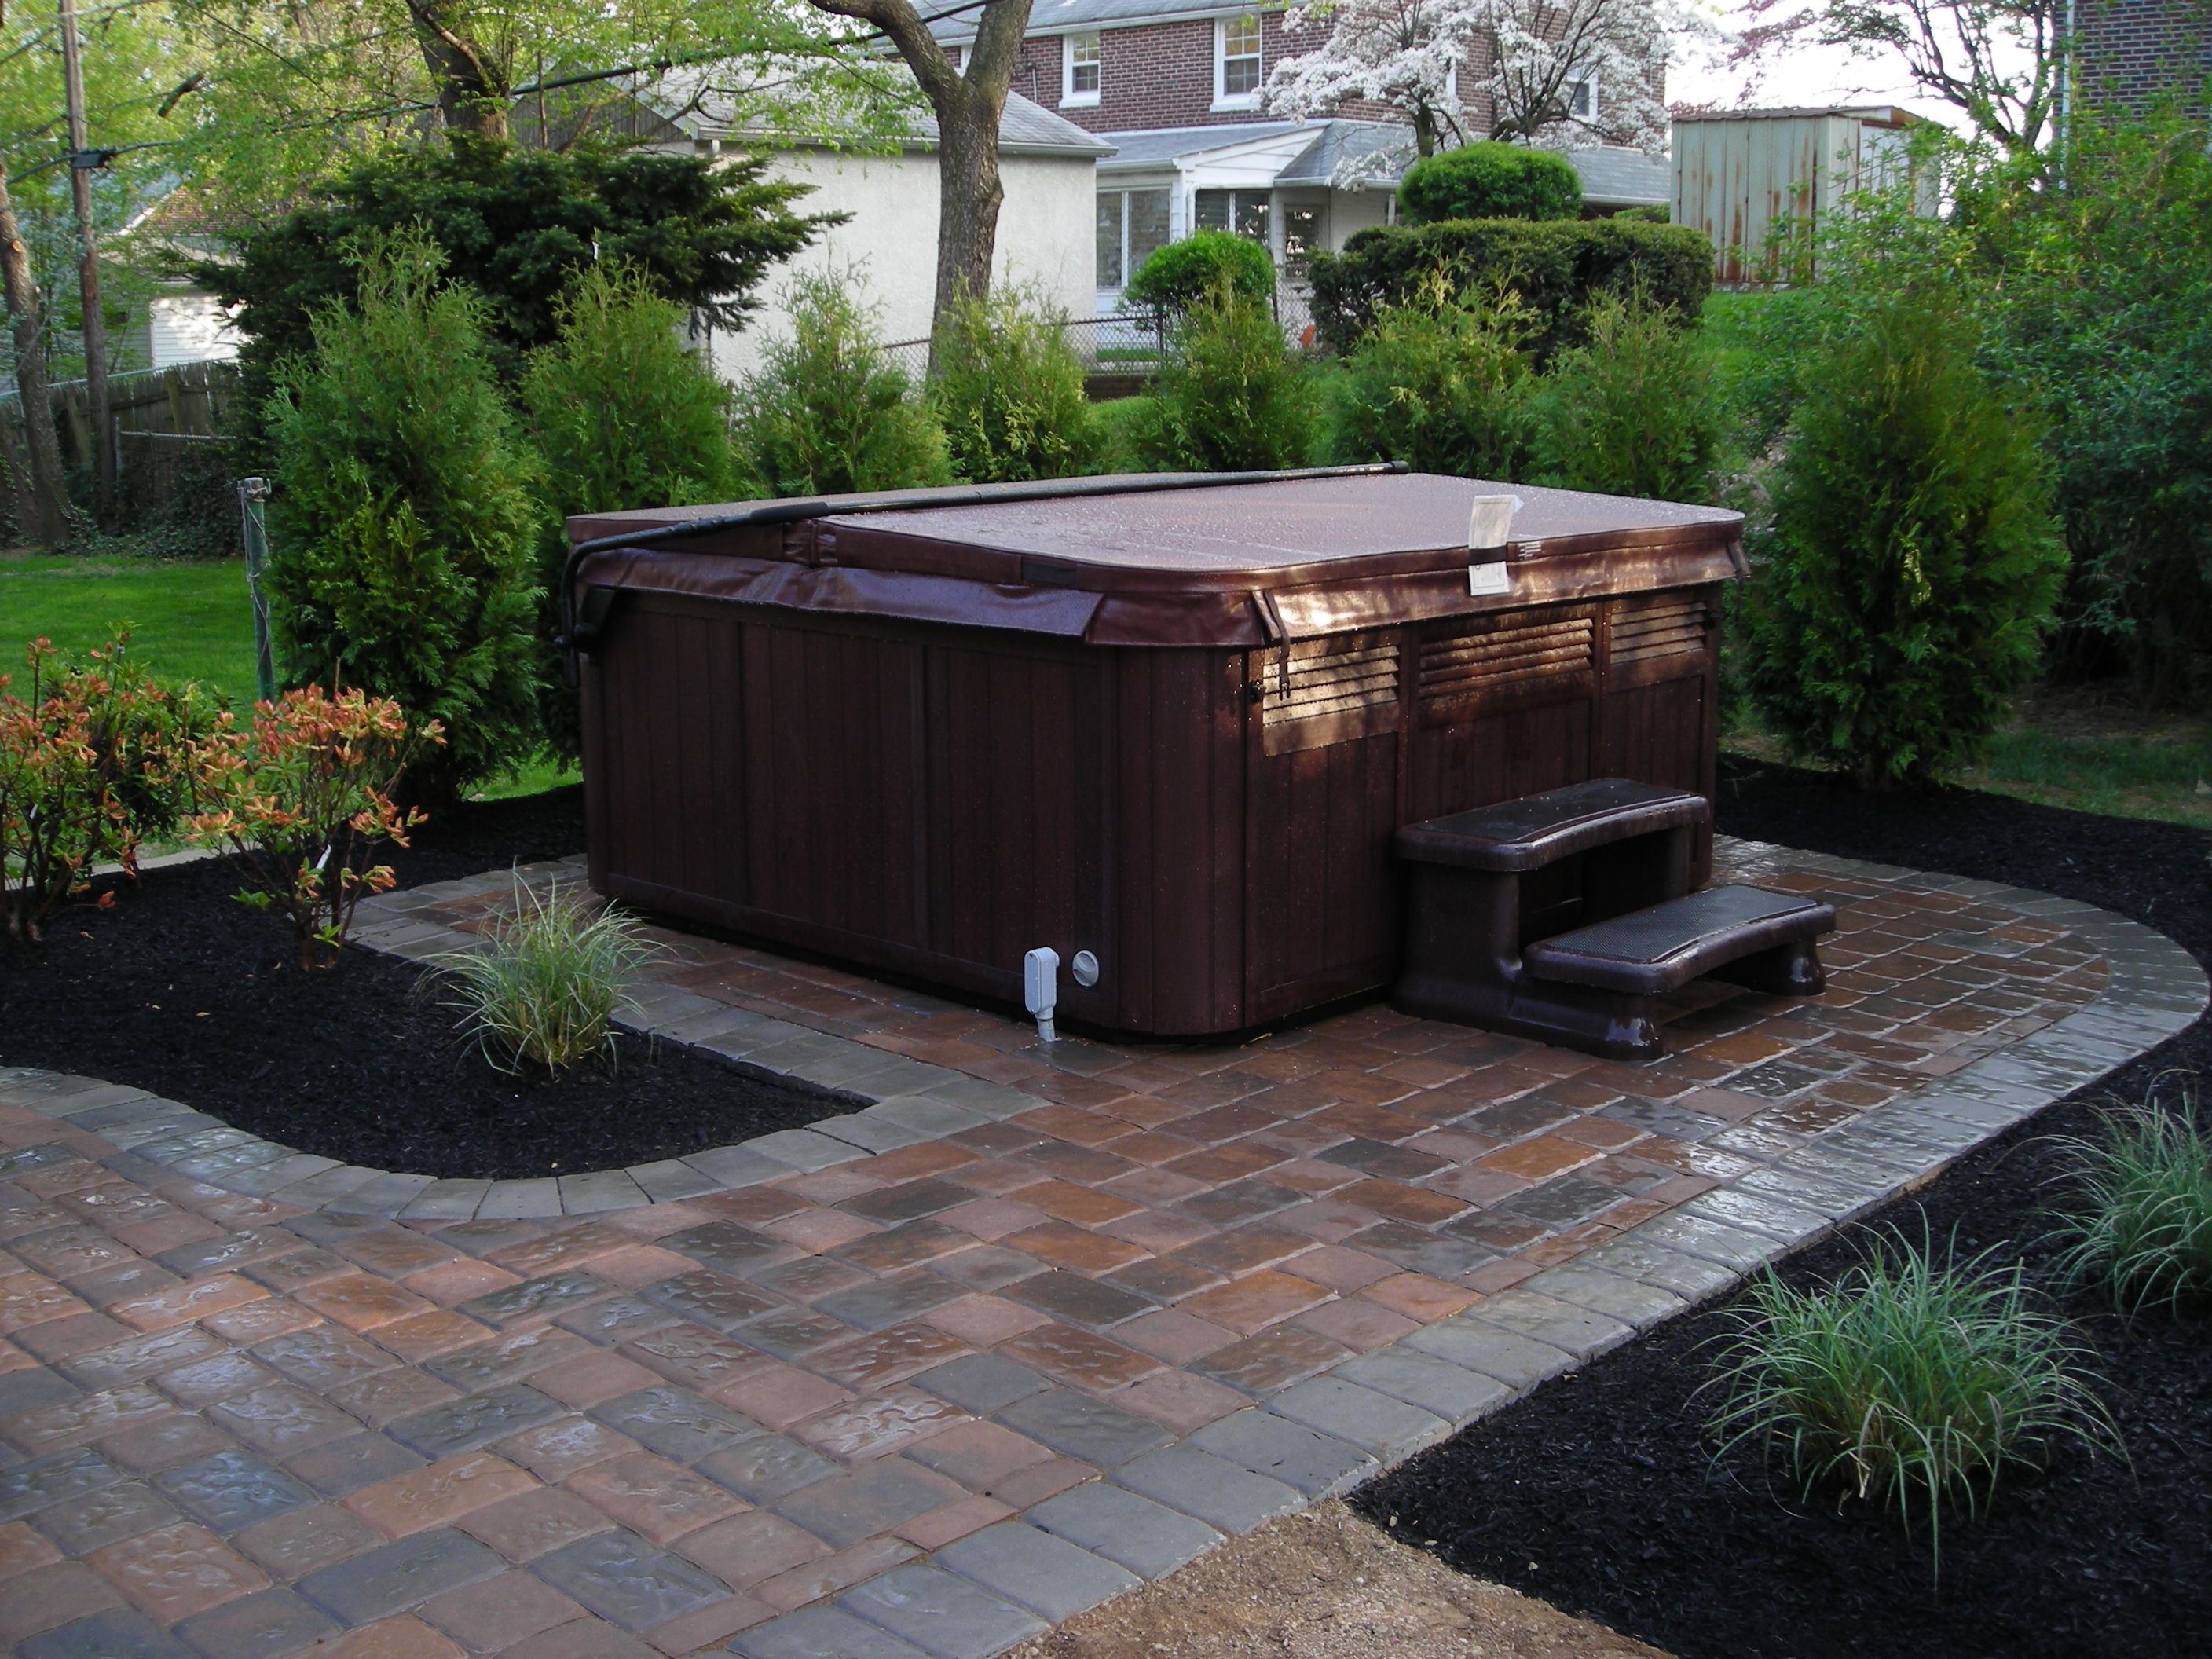 Hot Tub Design Ideas wooden patio jacuzzi design best patio design ideas gallery Find This Pin And More On Hot Tub Ideas